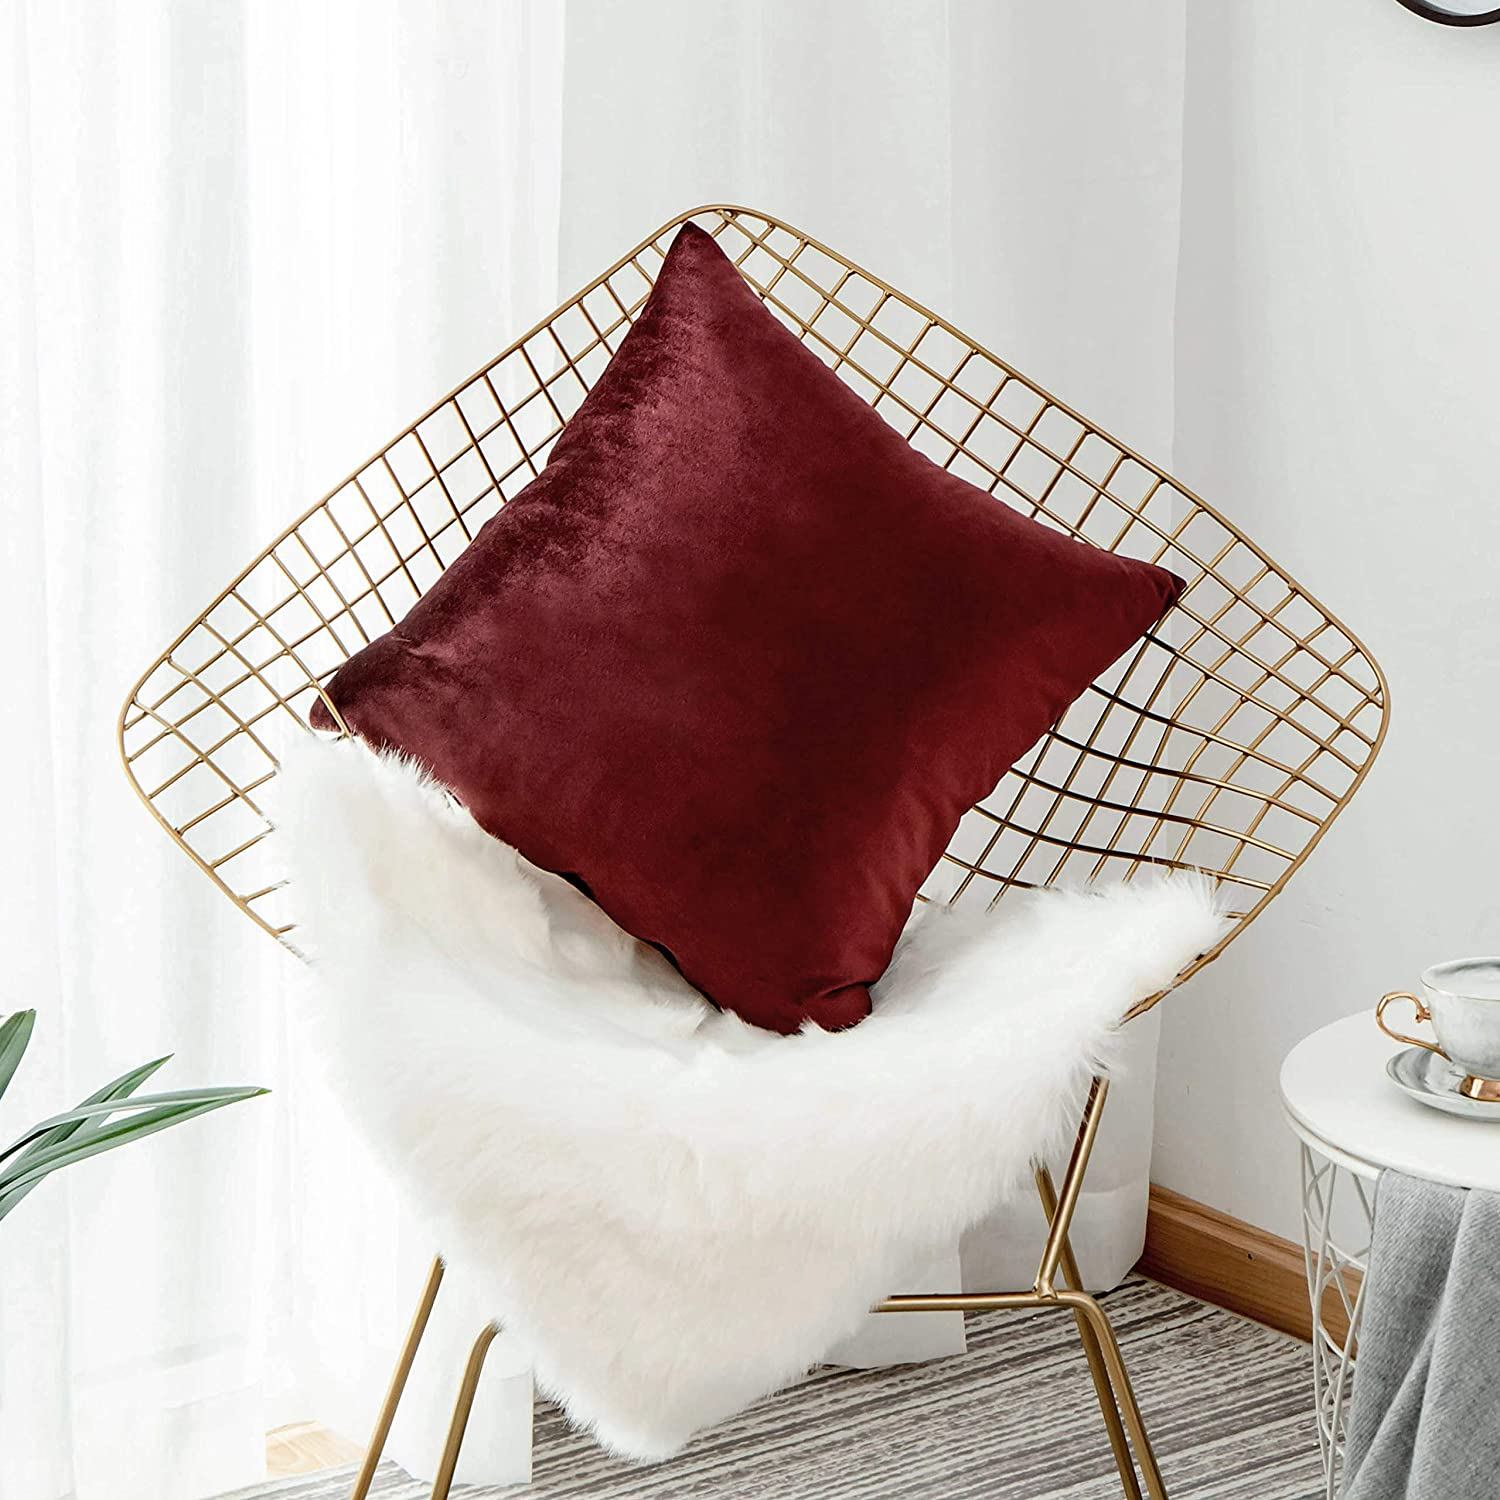 Home Brilliant Christmas Decorations Velvet Big Pillows for Bed Euro Pillow Sham Pillowcase for Sofa Living Room, 26 x 26 Inch(66cm), Dark Brick Red